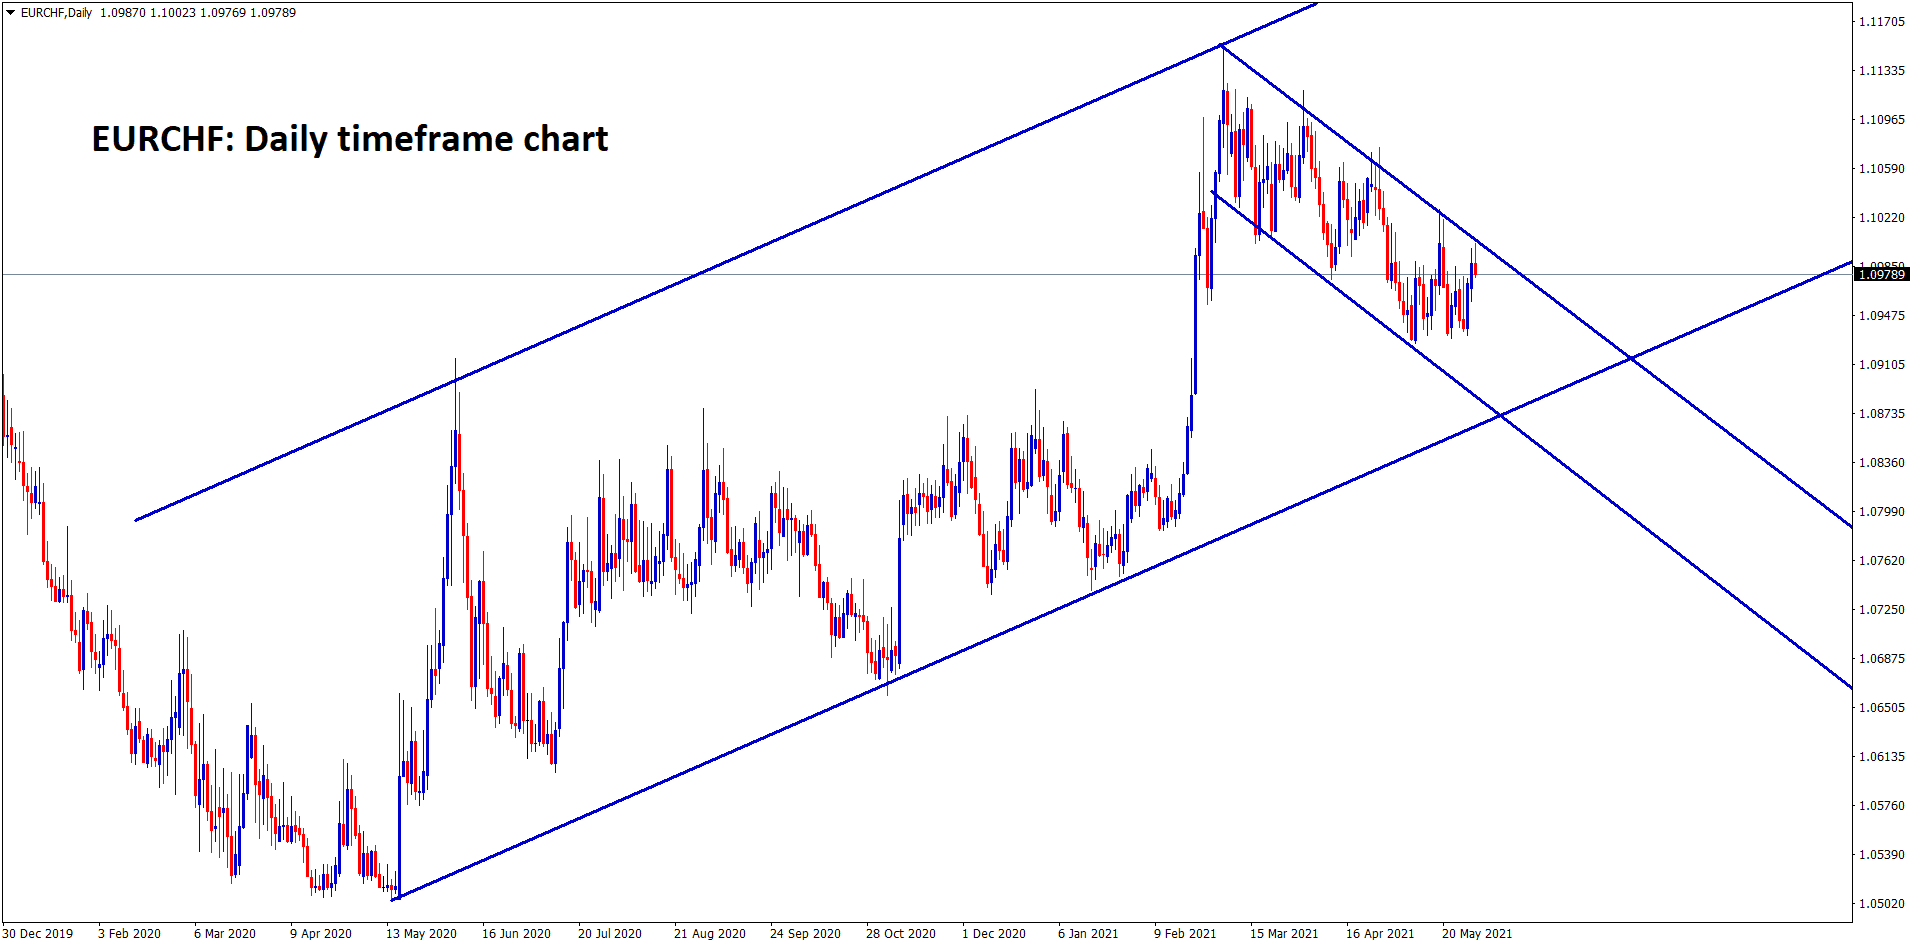 EURCHF is moving in a Uptrend for long term view but in short term its moving in downtrend